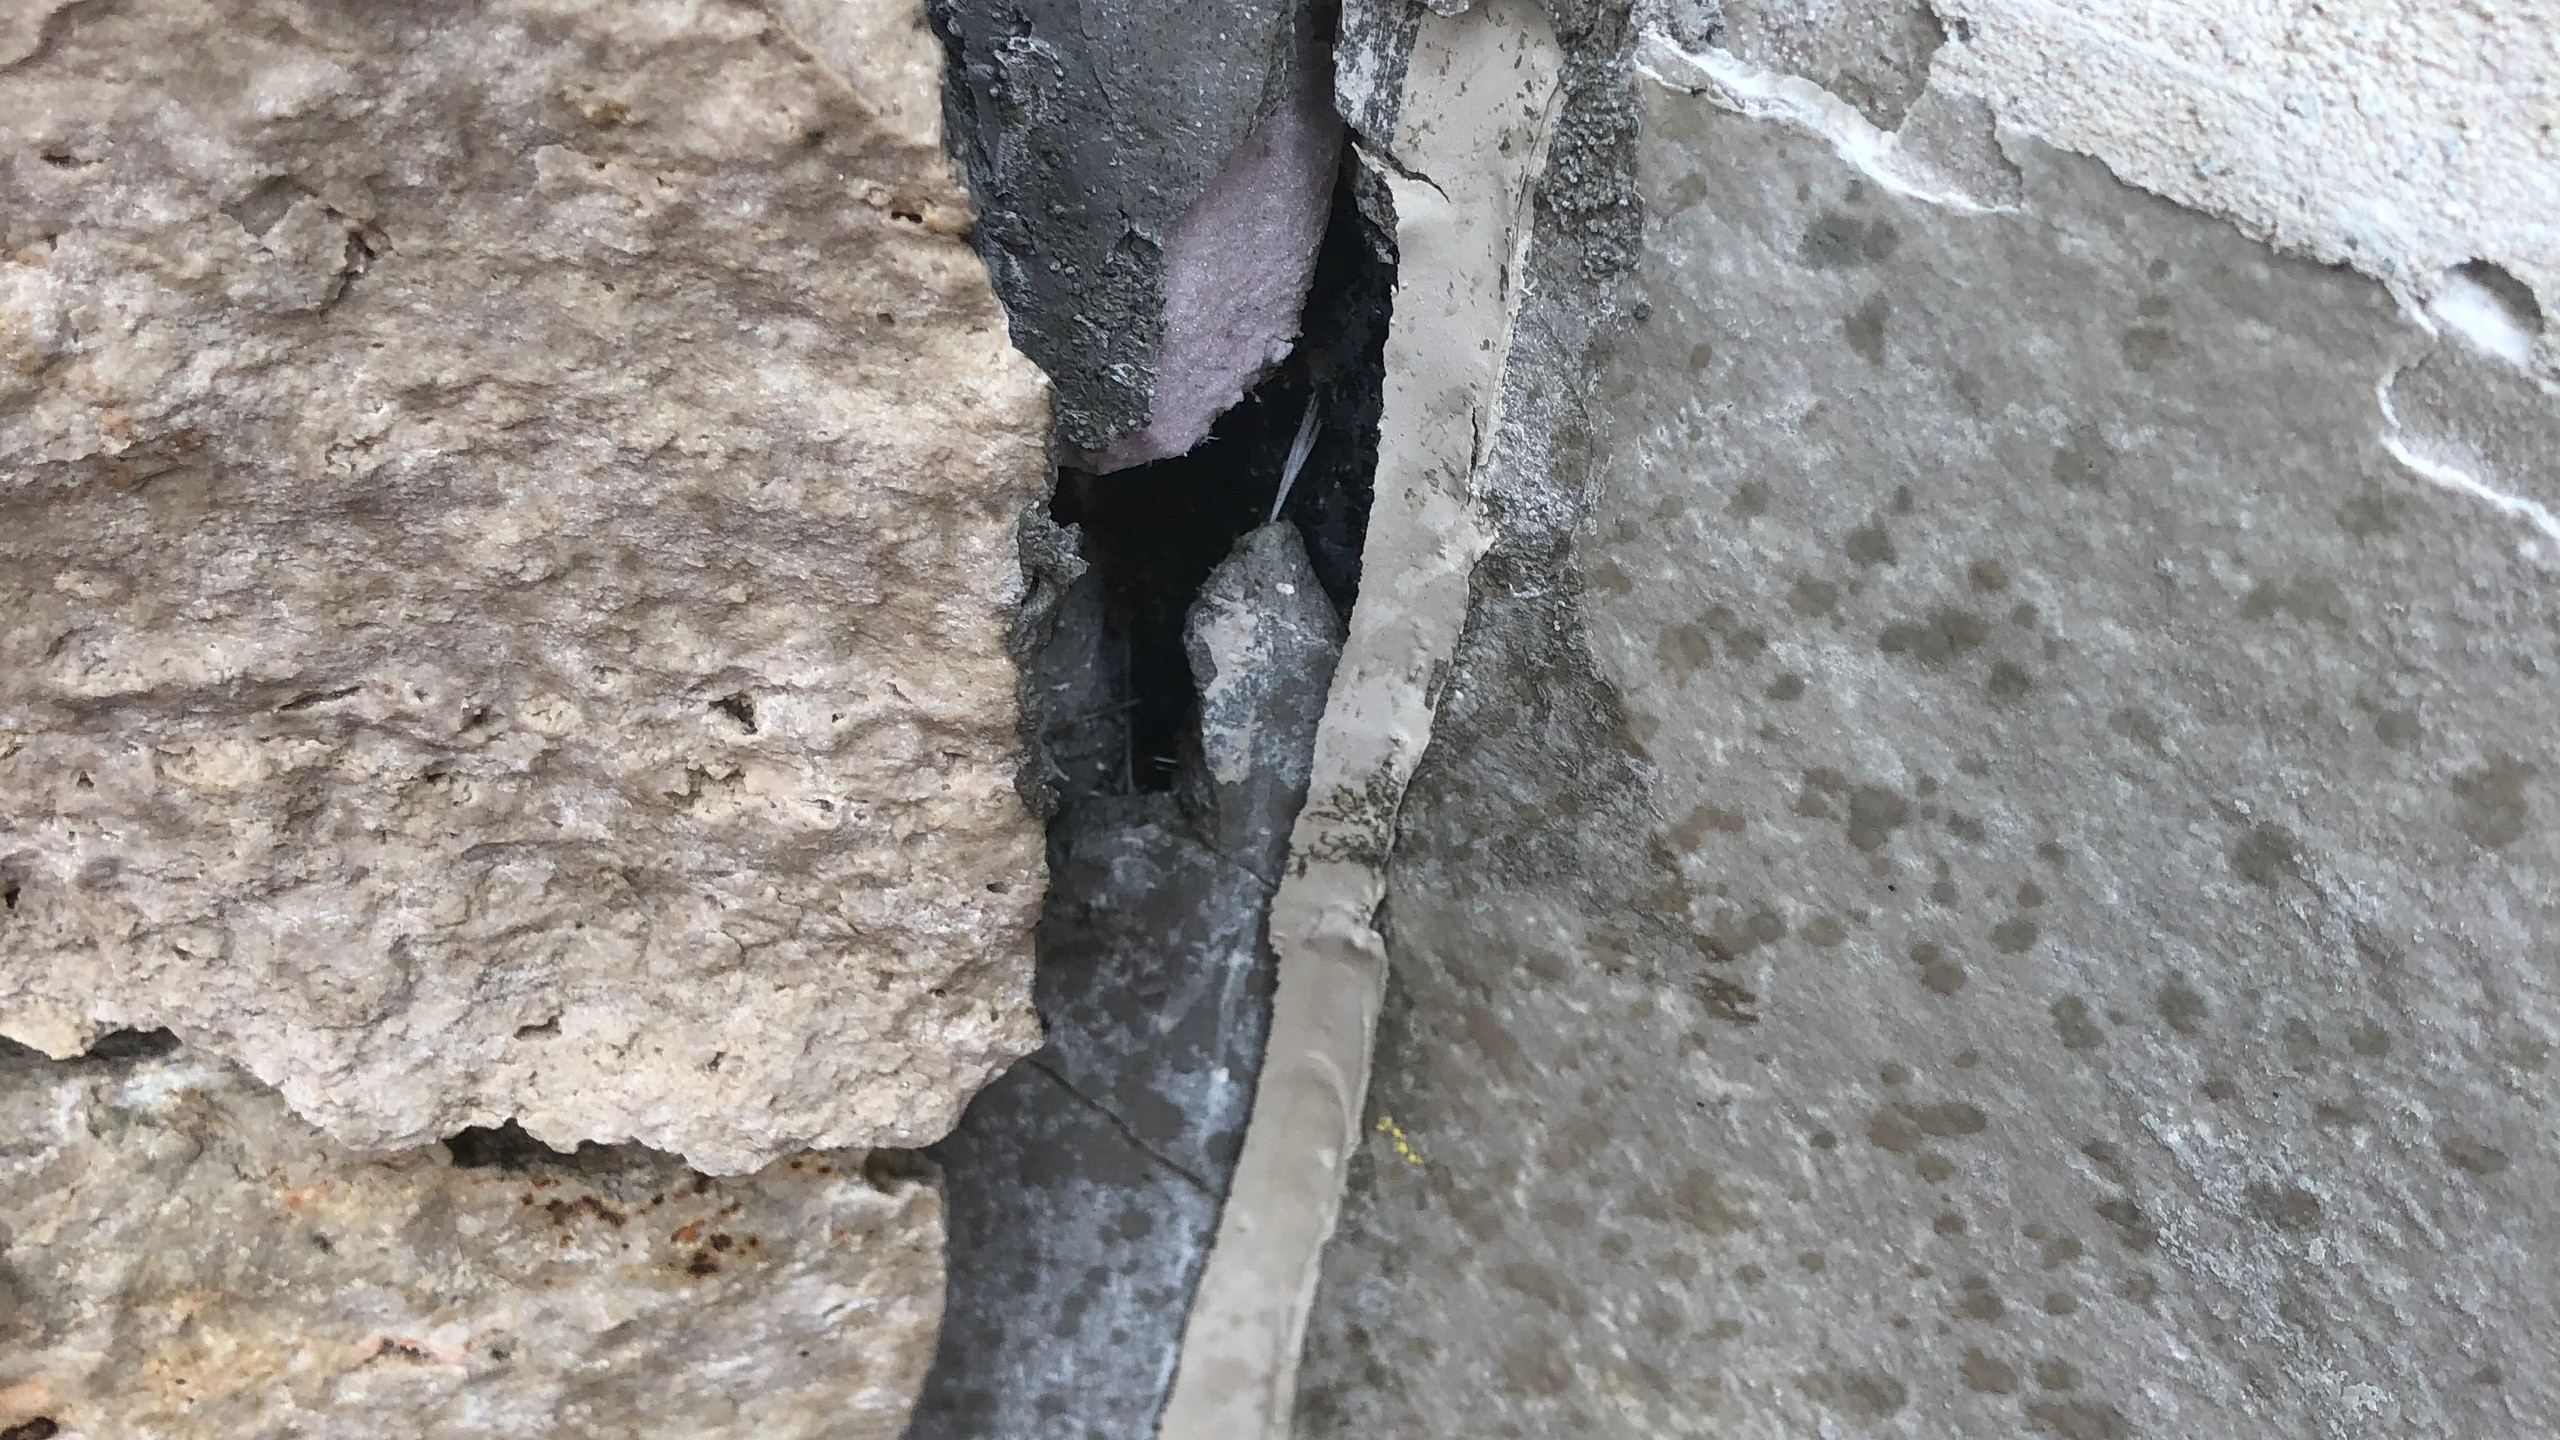 Caulk or repair any cracks